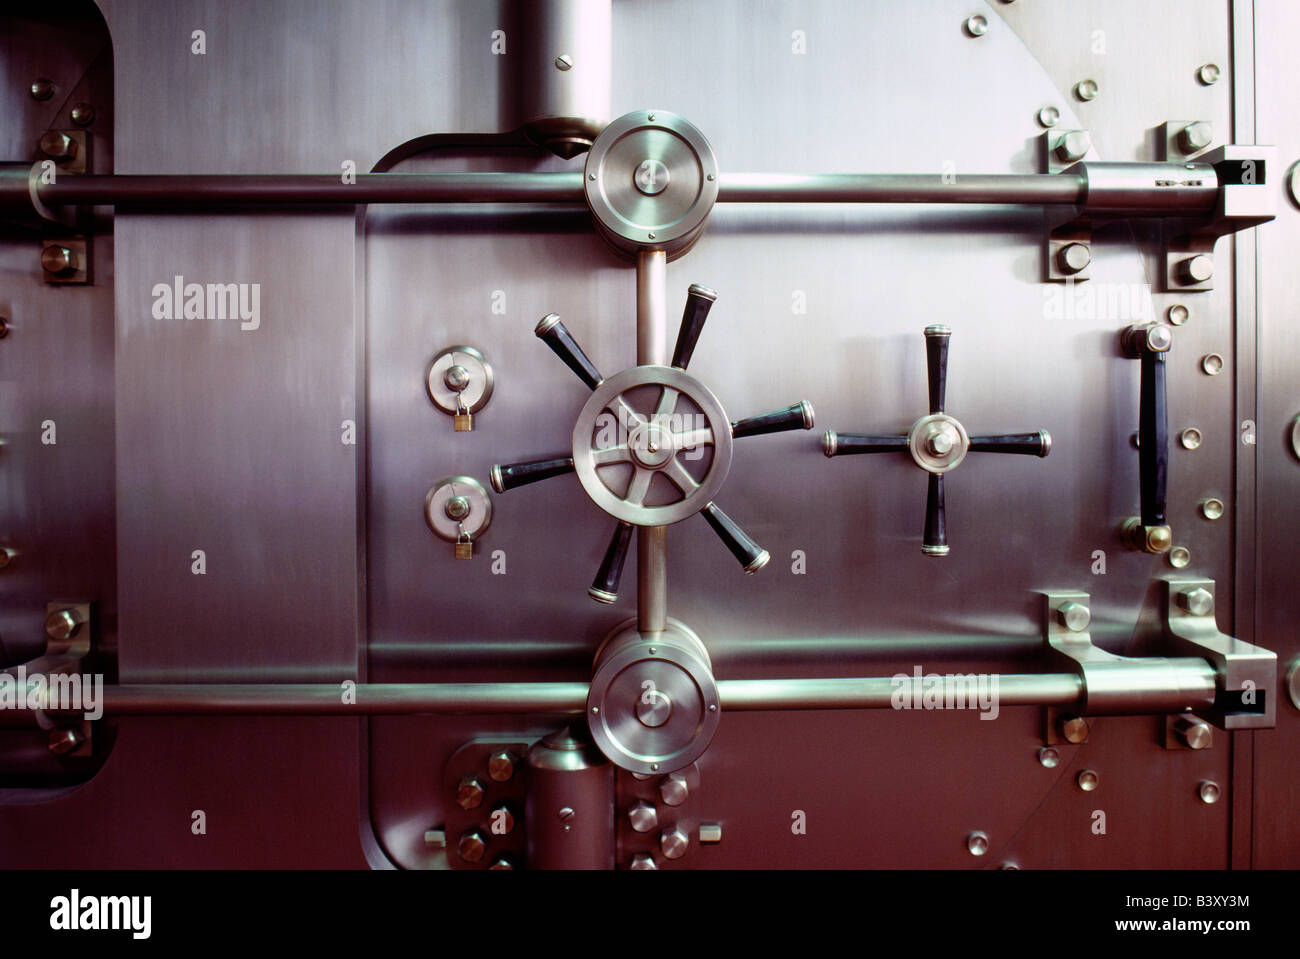 Bank vault - Stock Image